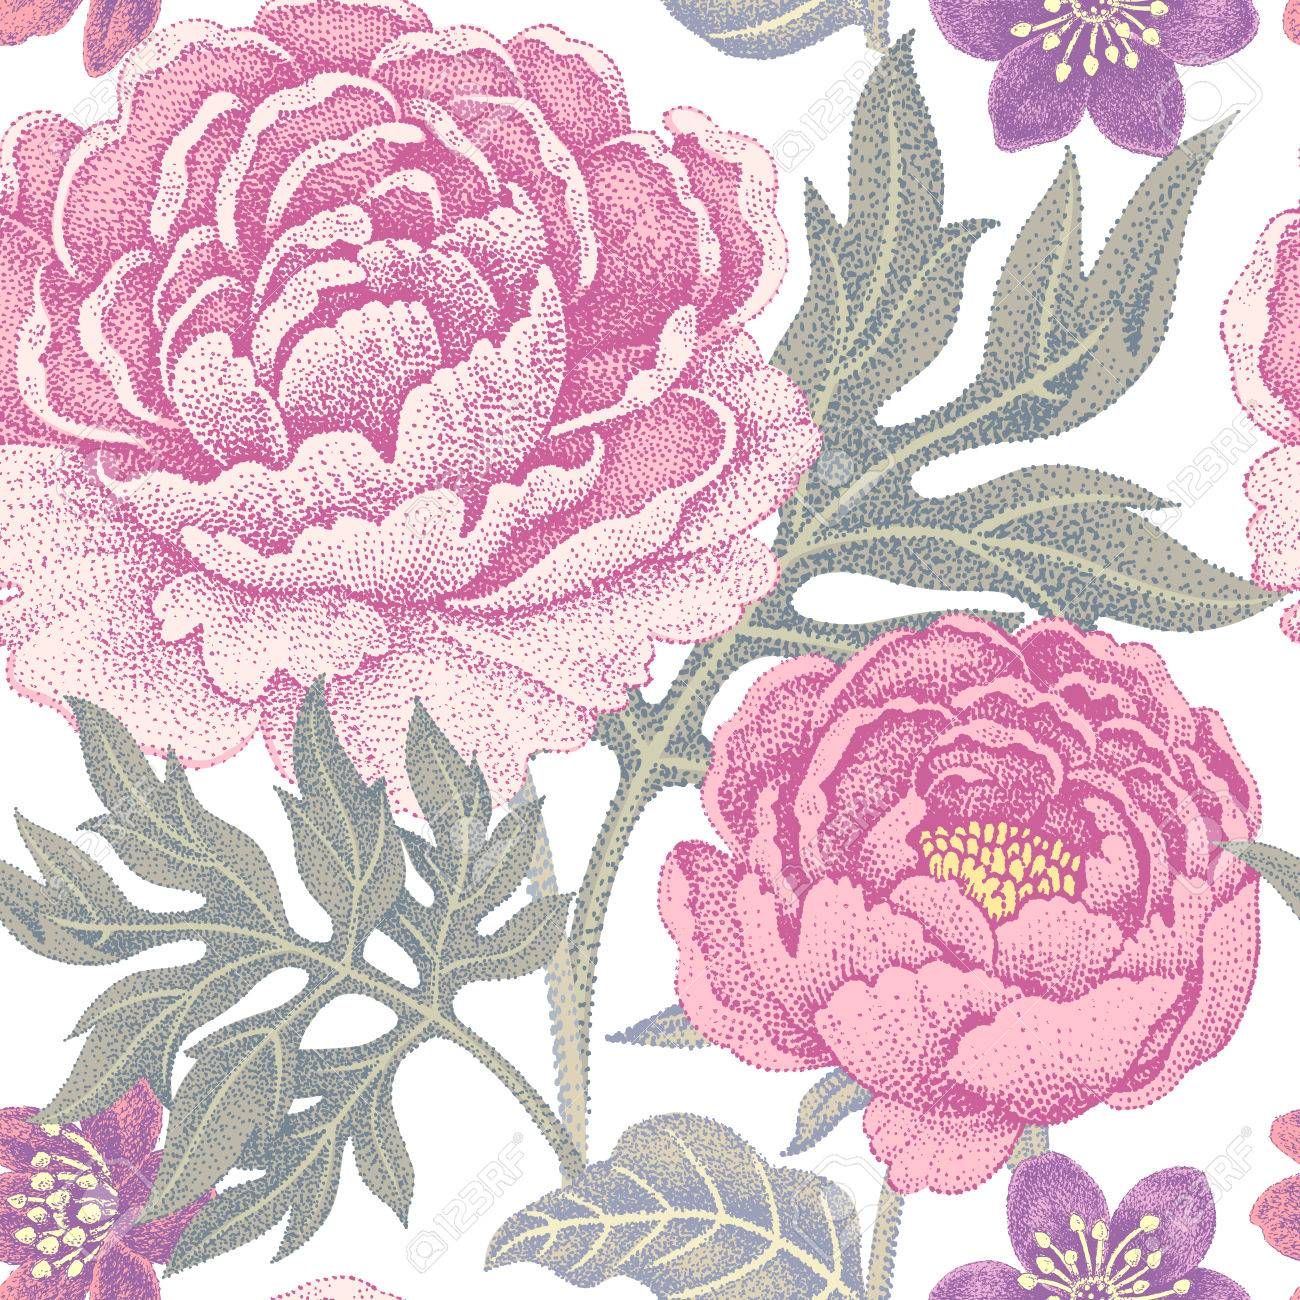 Floral Seamless Pattern On A White Background For Fabrics